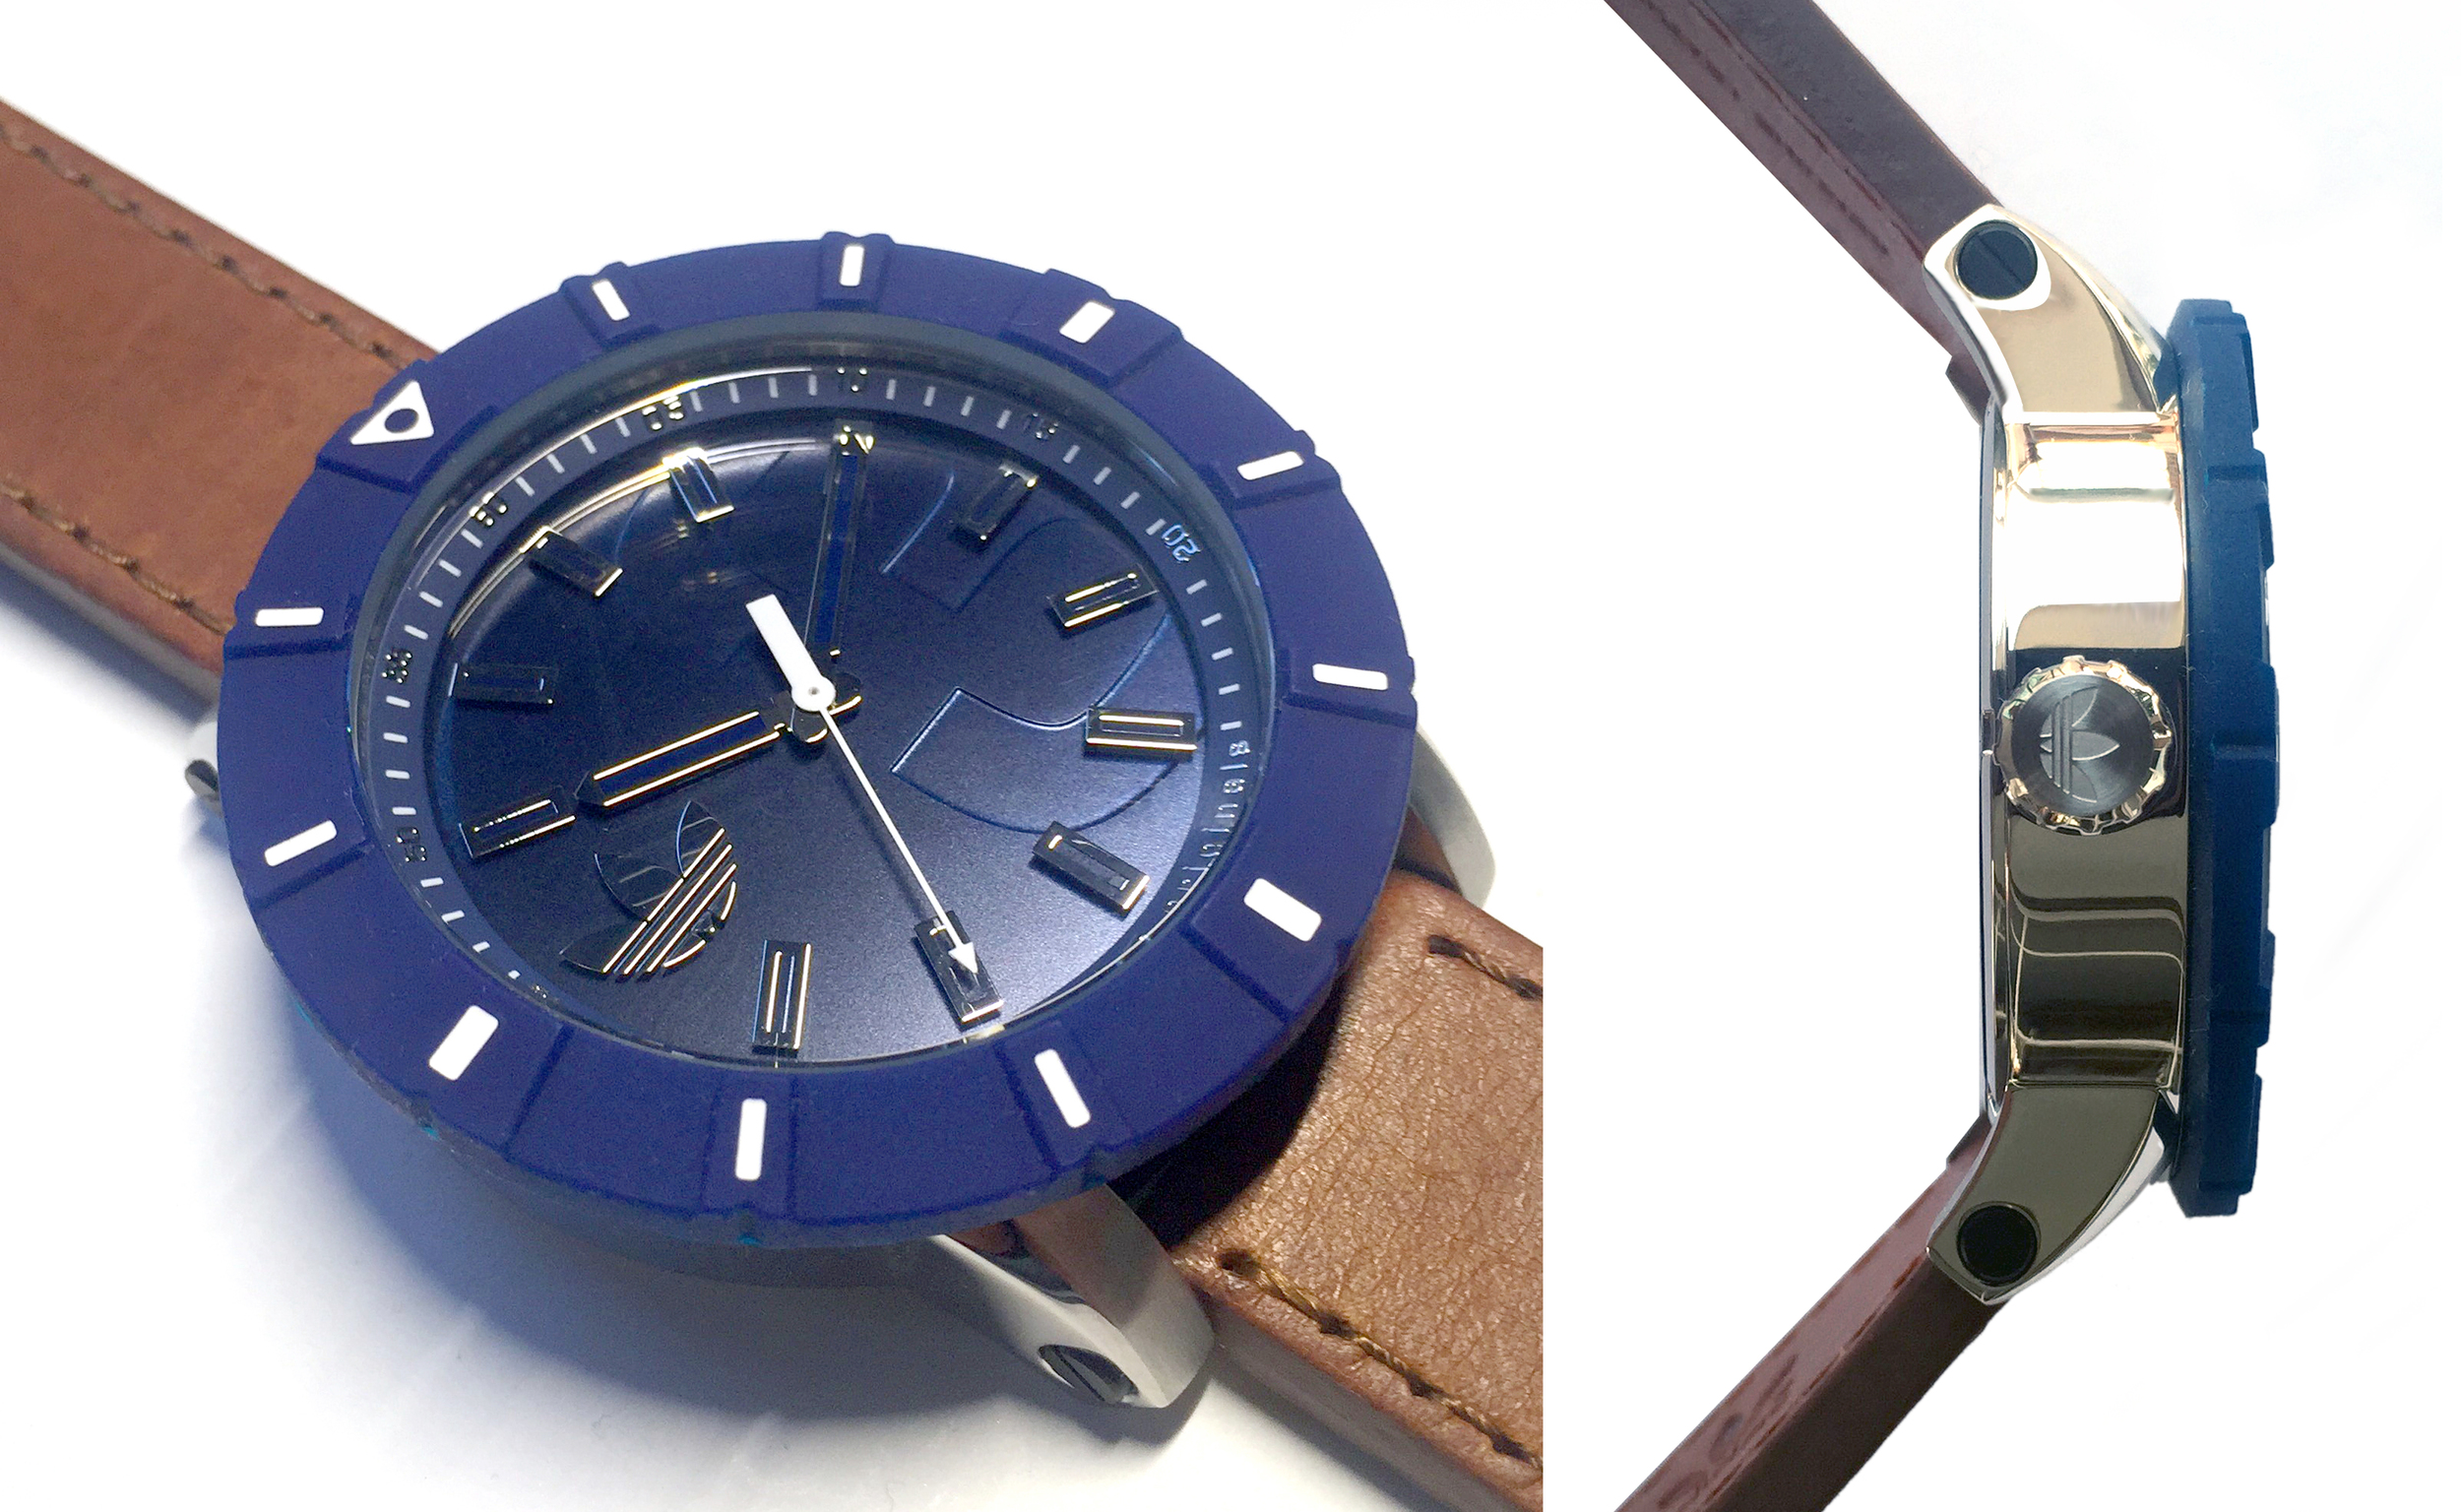 """Dial with """"floating"""" indexes"""" The metallic numbers on the tracking, the floating indexes, the tonal debossed 3, and the lug screws were all meant to be secondary reads to the overall watch design."""